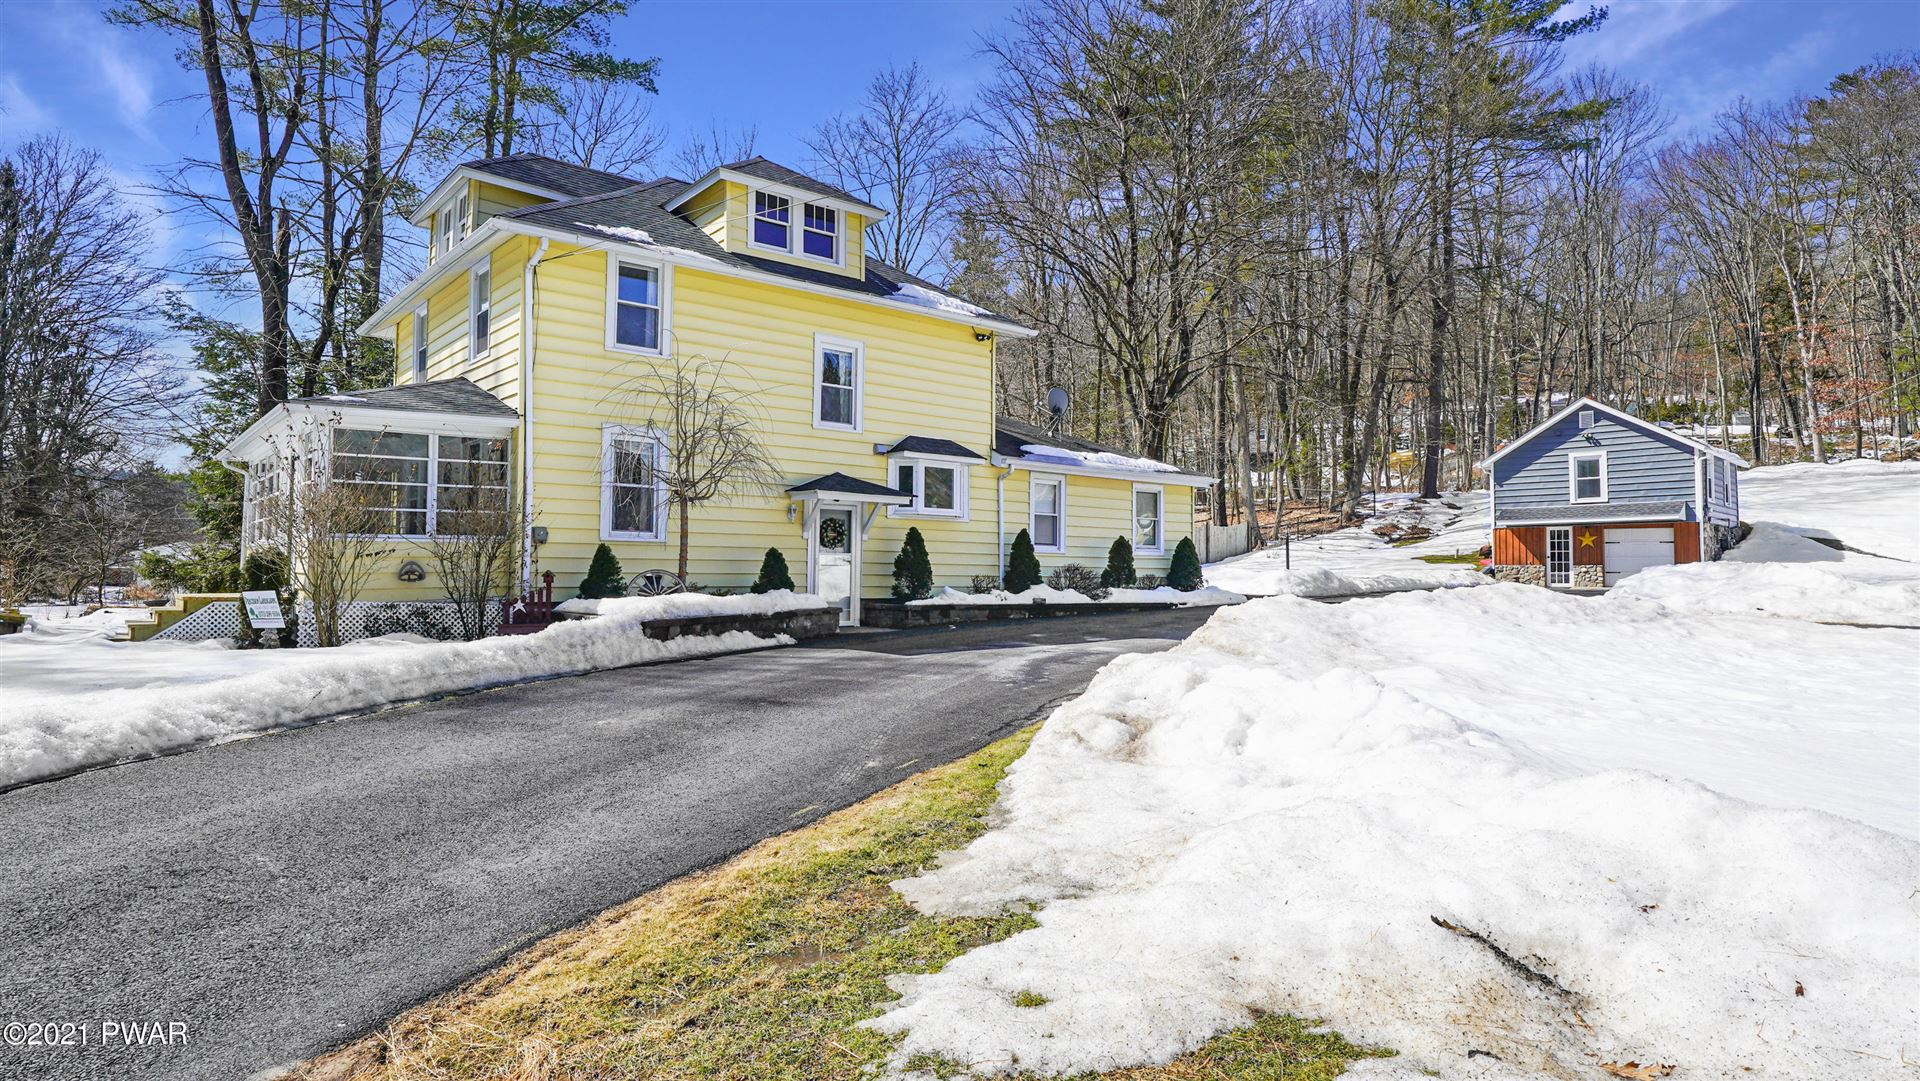 Photo of 108 Moon Valley Rd, Milford, PA 18337 (MLS # 21-627)